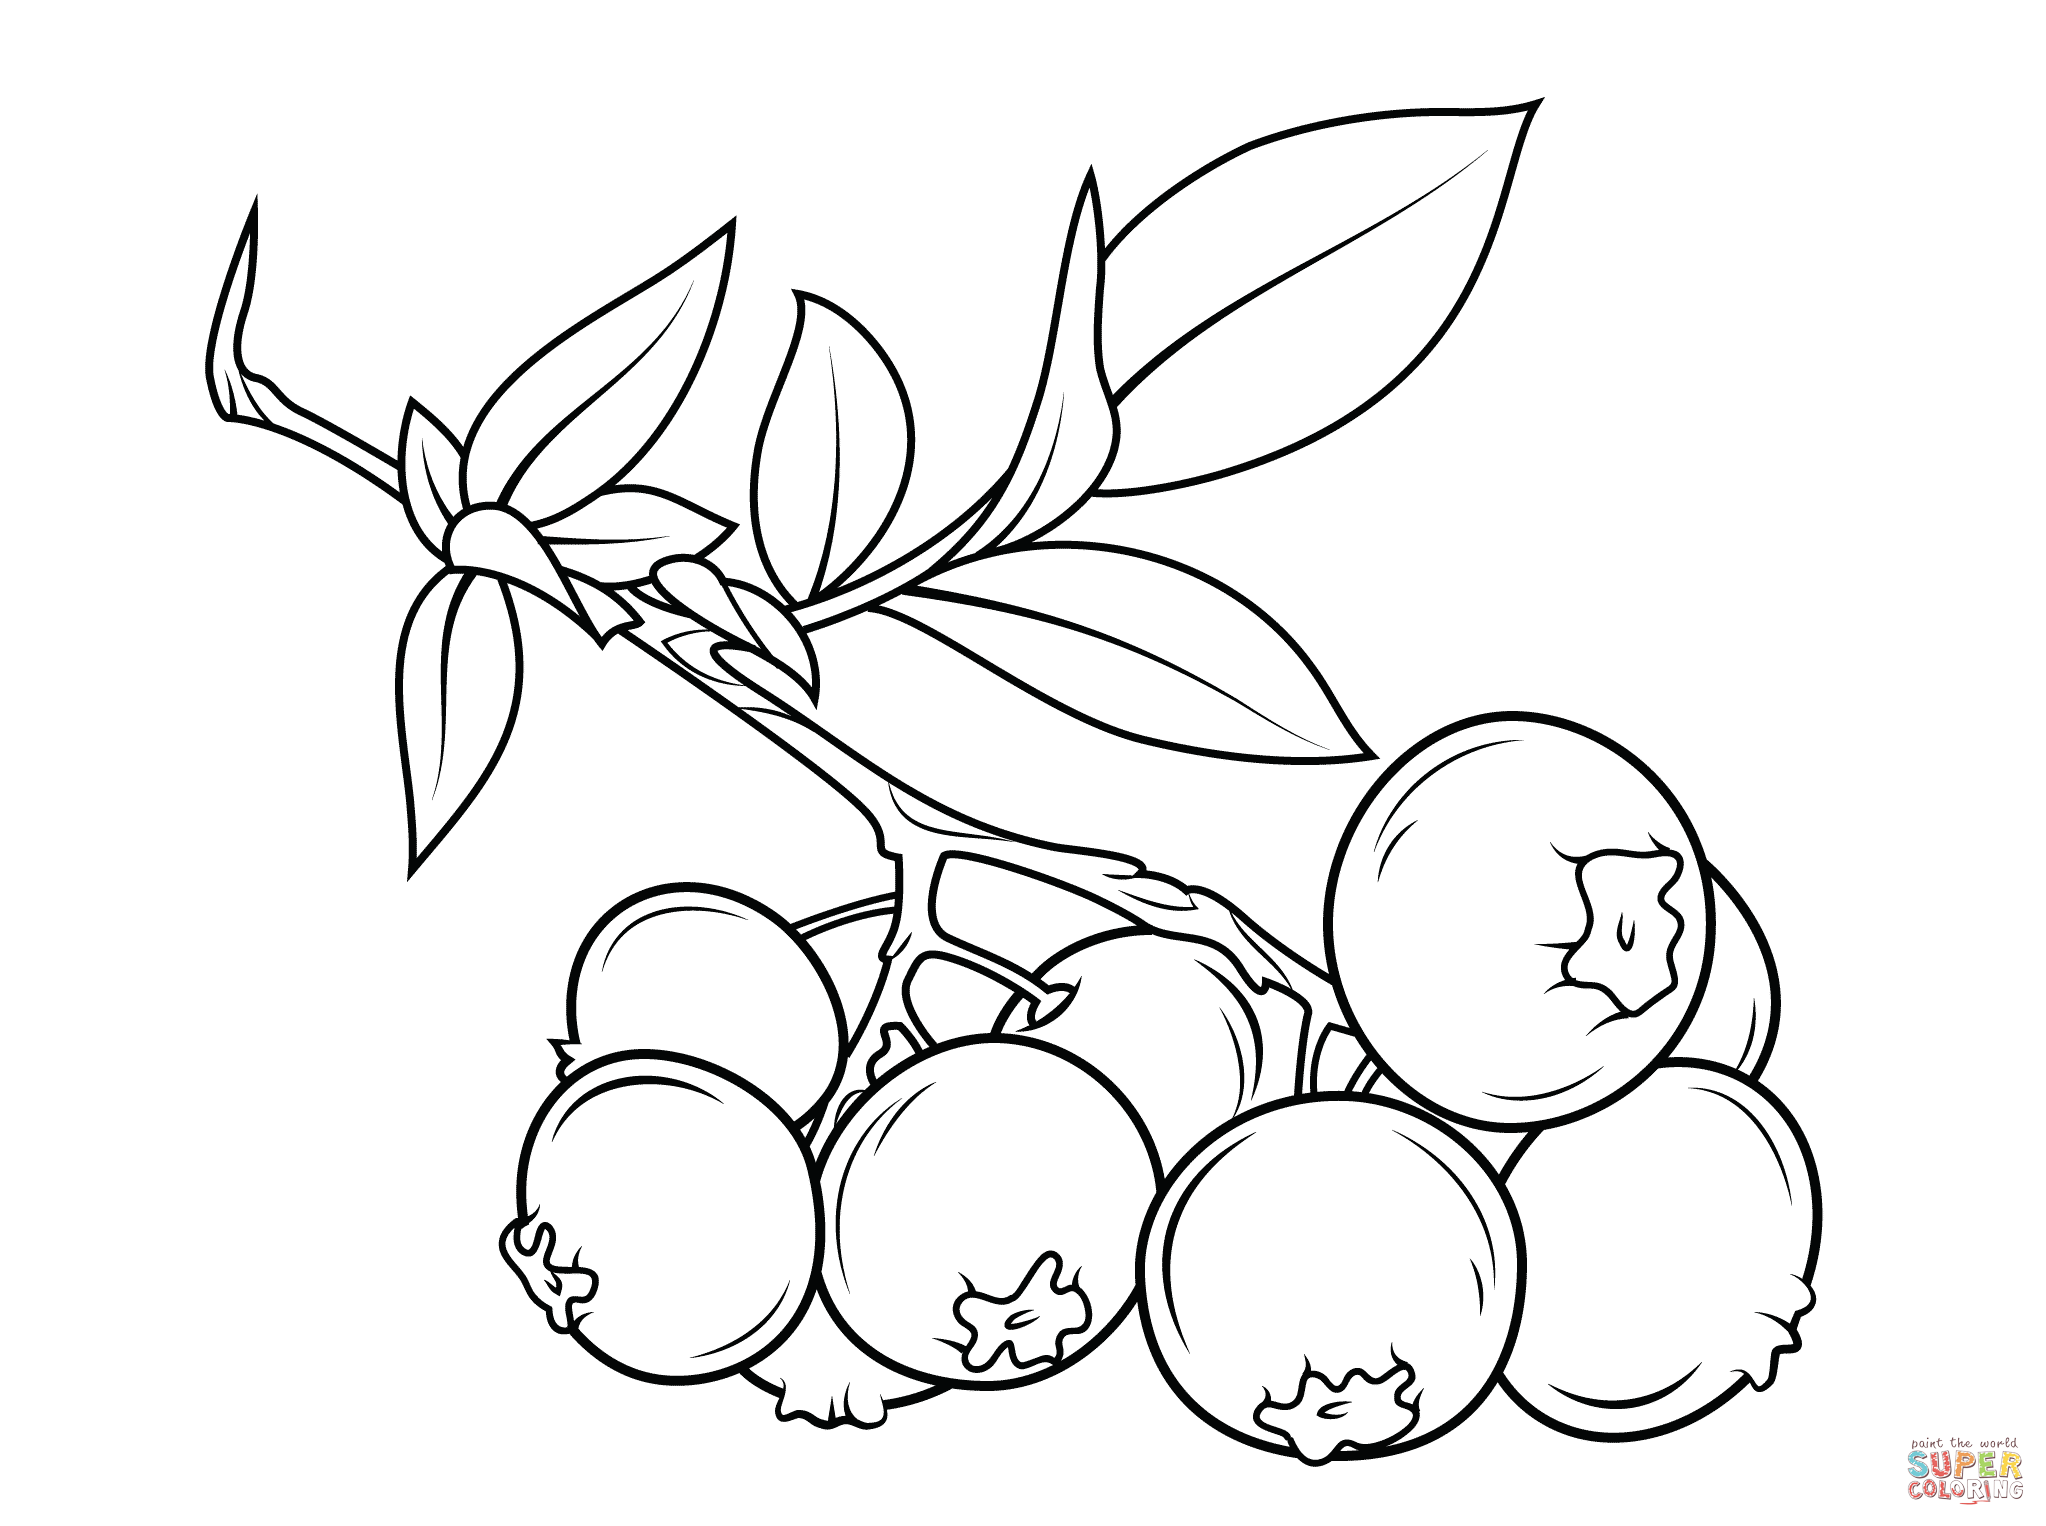 Blueberry clipart black and white The Free Printable Blueberry branch